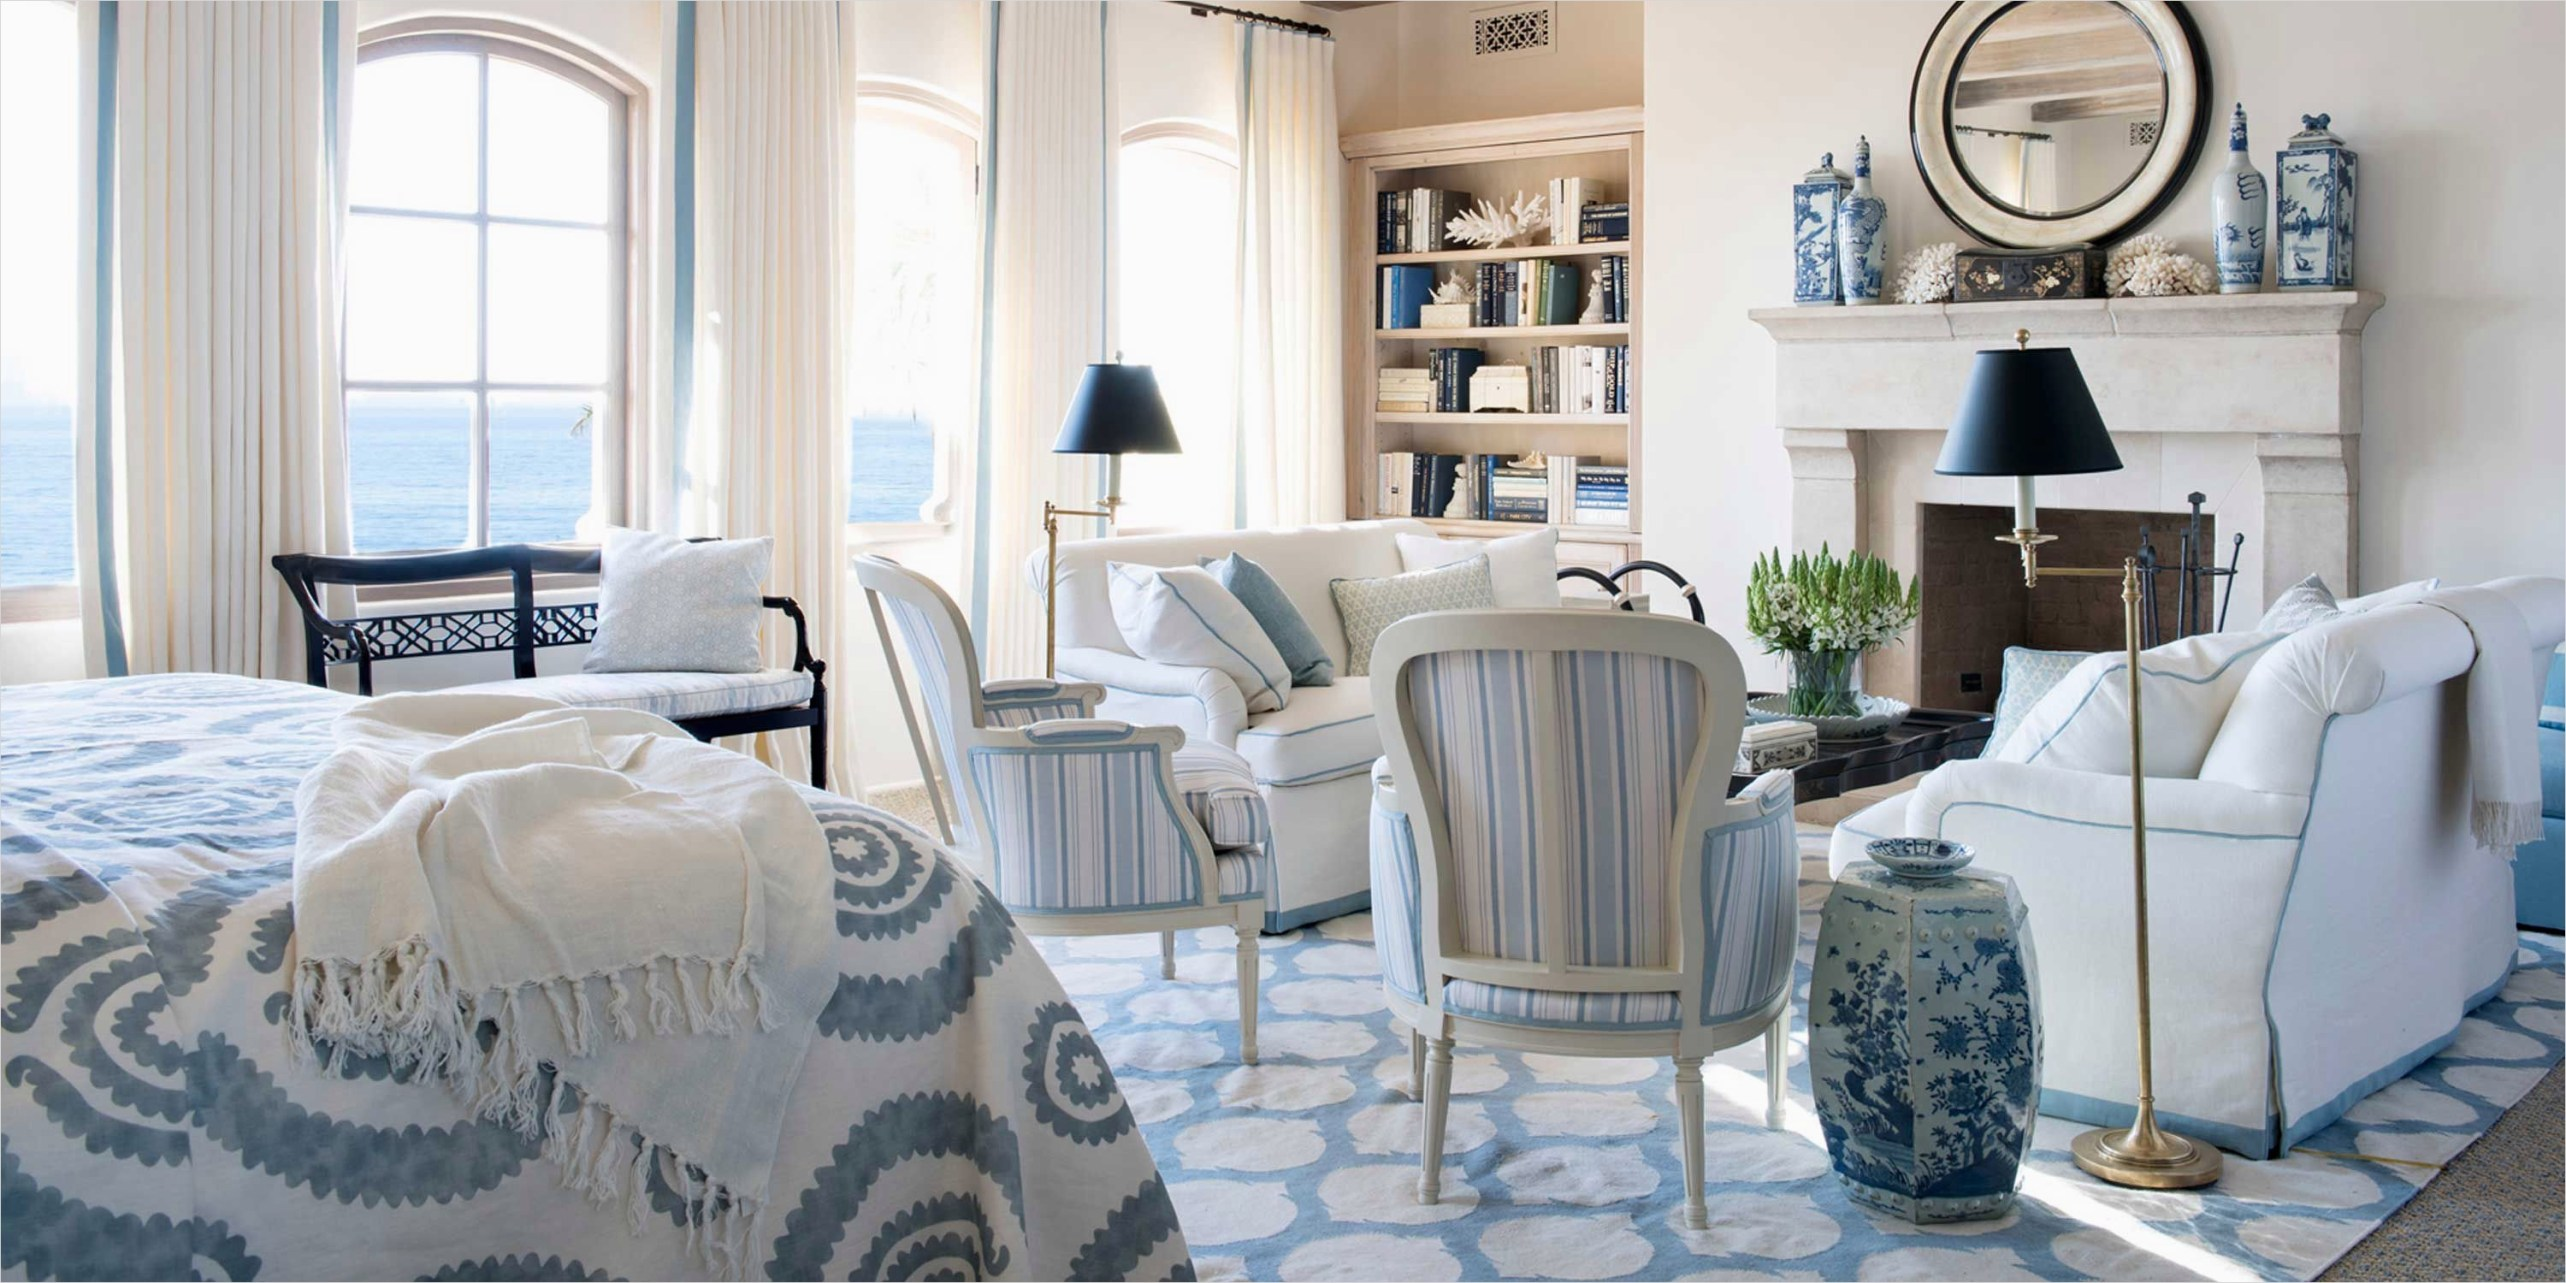 41 Amazing Navy Blue and White Living Room 18 Living Room Blue and White Living Room Red and White Living Room Navy Blue Living Room Chair 4